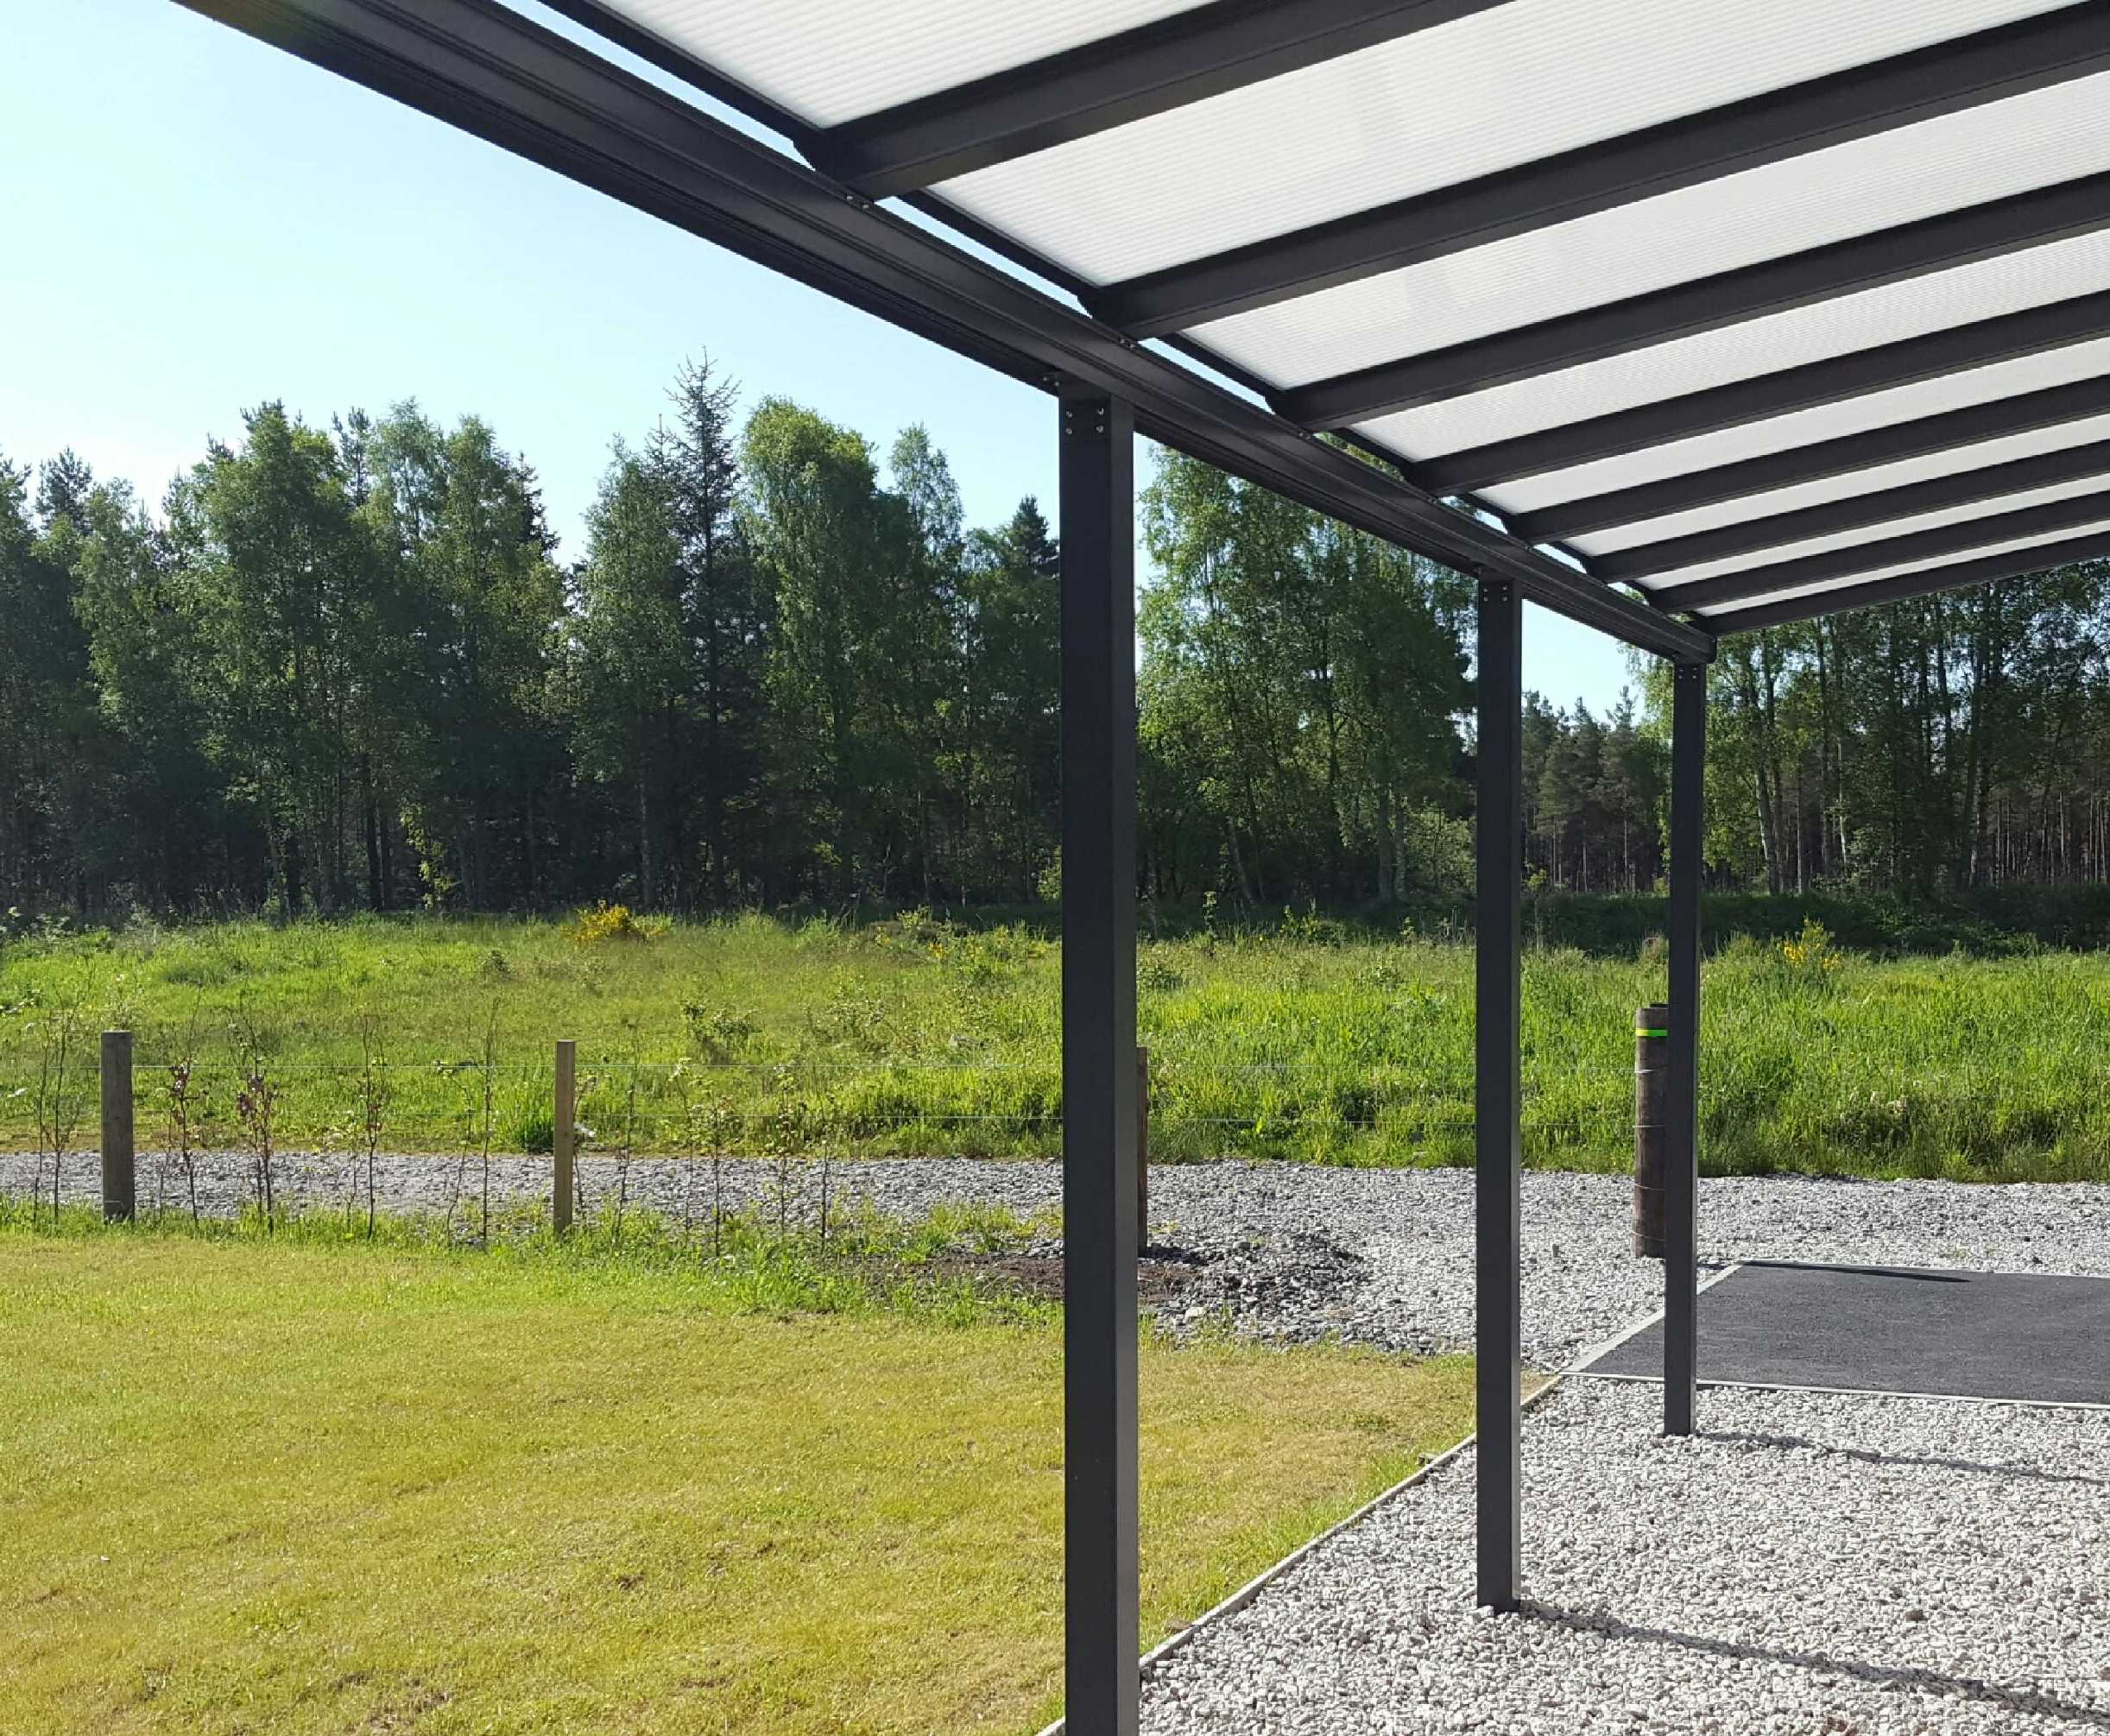 Omega Smart Lean-To Canopy, Anthracite Grey, 16mm Polycarbonate Glazing - 10.6m (W) x 2.0m (P), (5) Supporting Posts